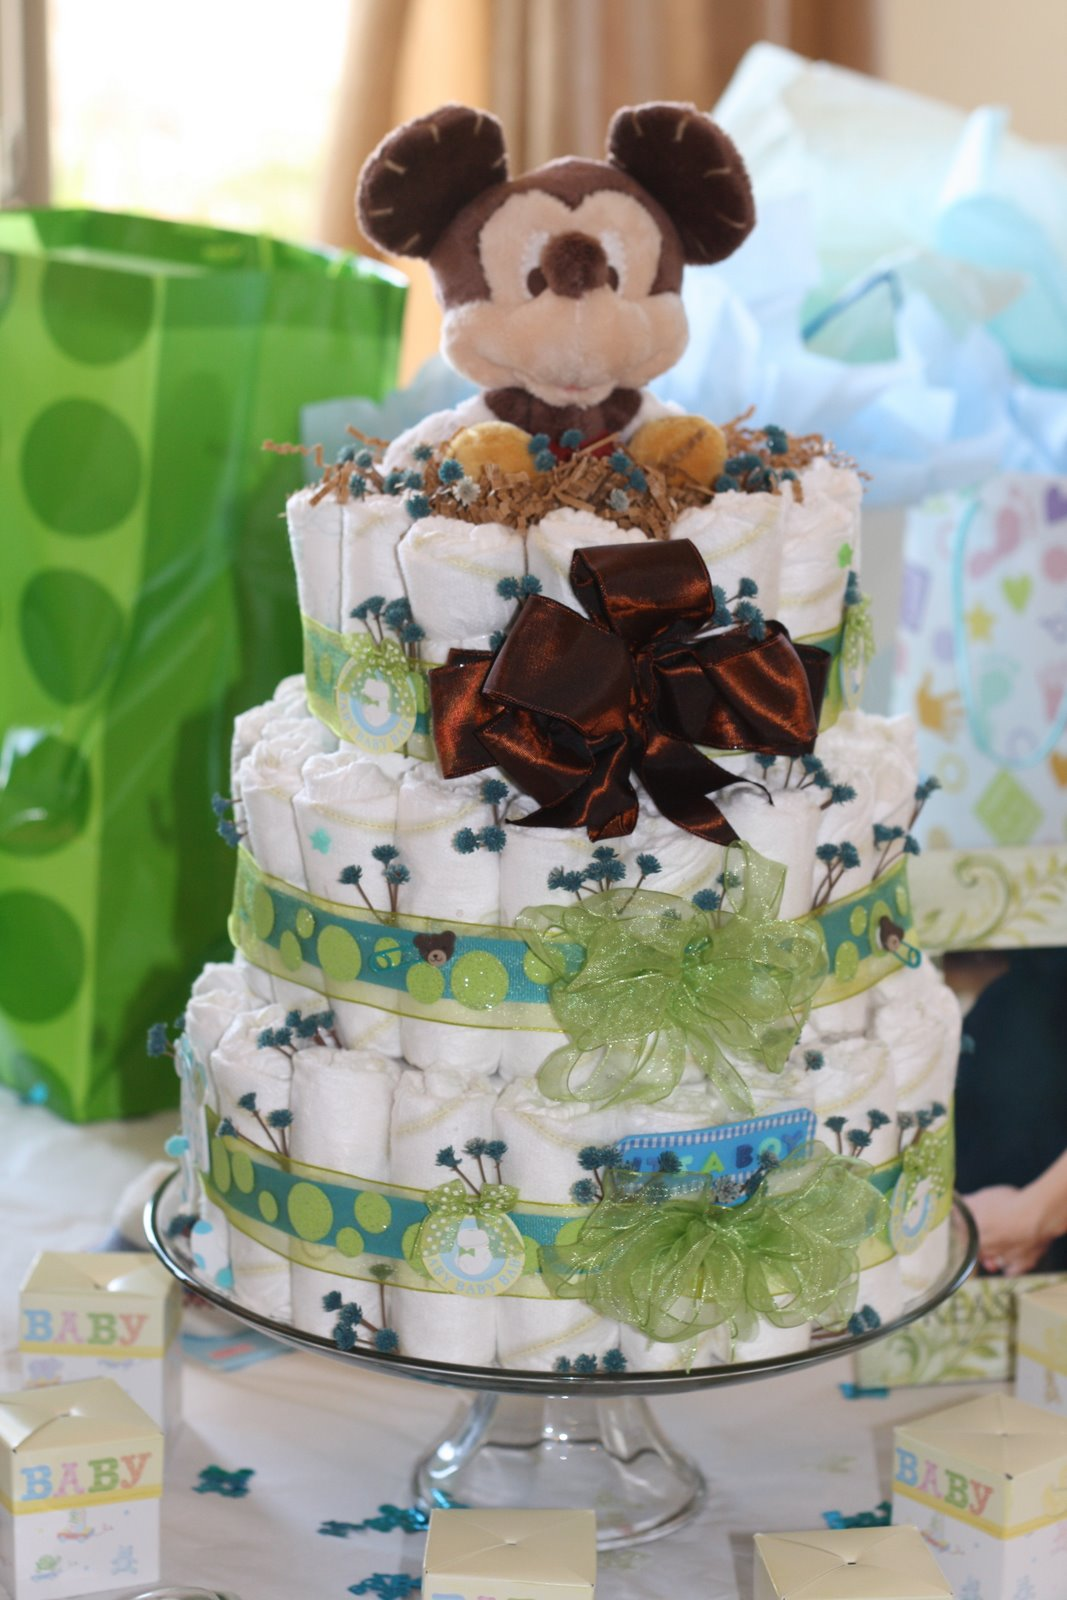 The Project Table Baby Boy Diaper Cakes